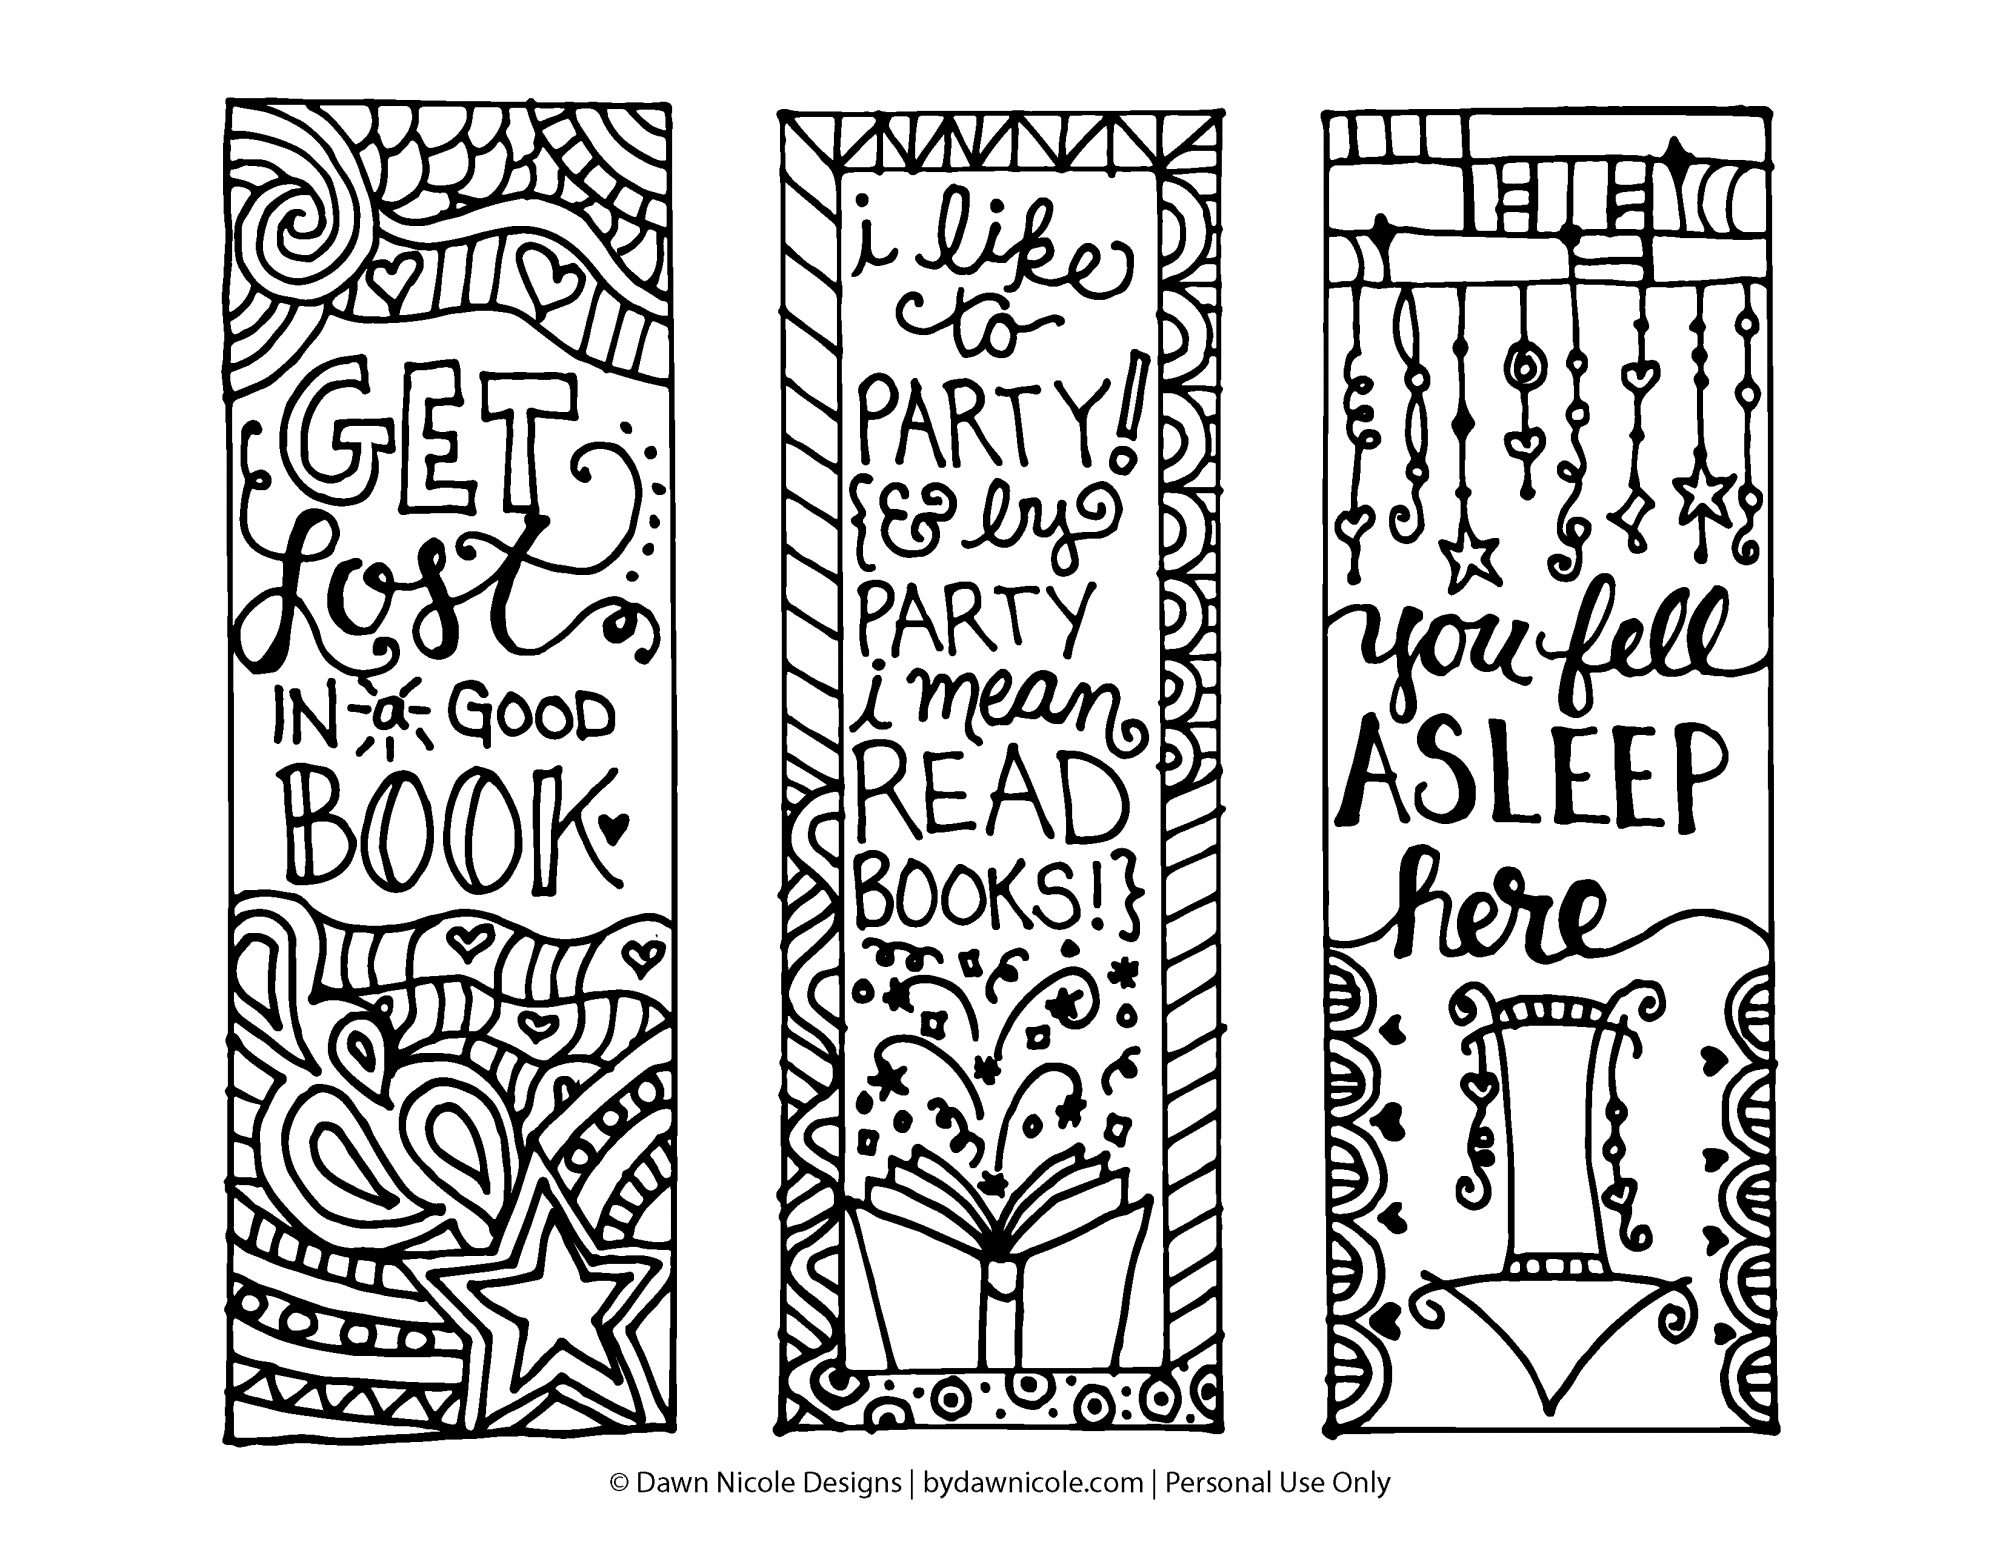 Free Printable Coloring Page Bookmarks   Dawn Nicole Designs® - Free Printable Bookmarks